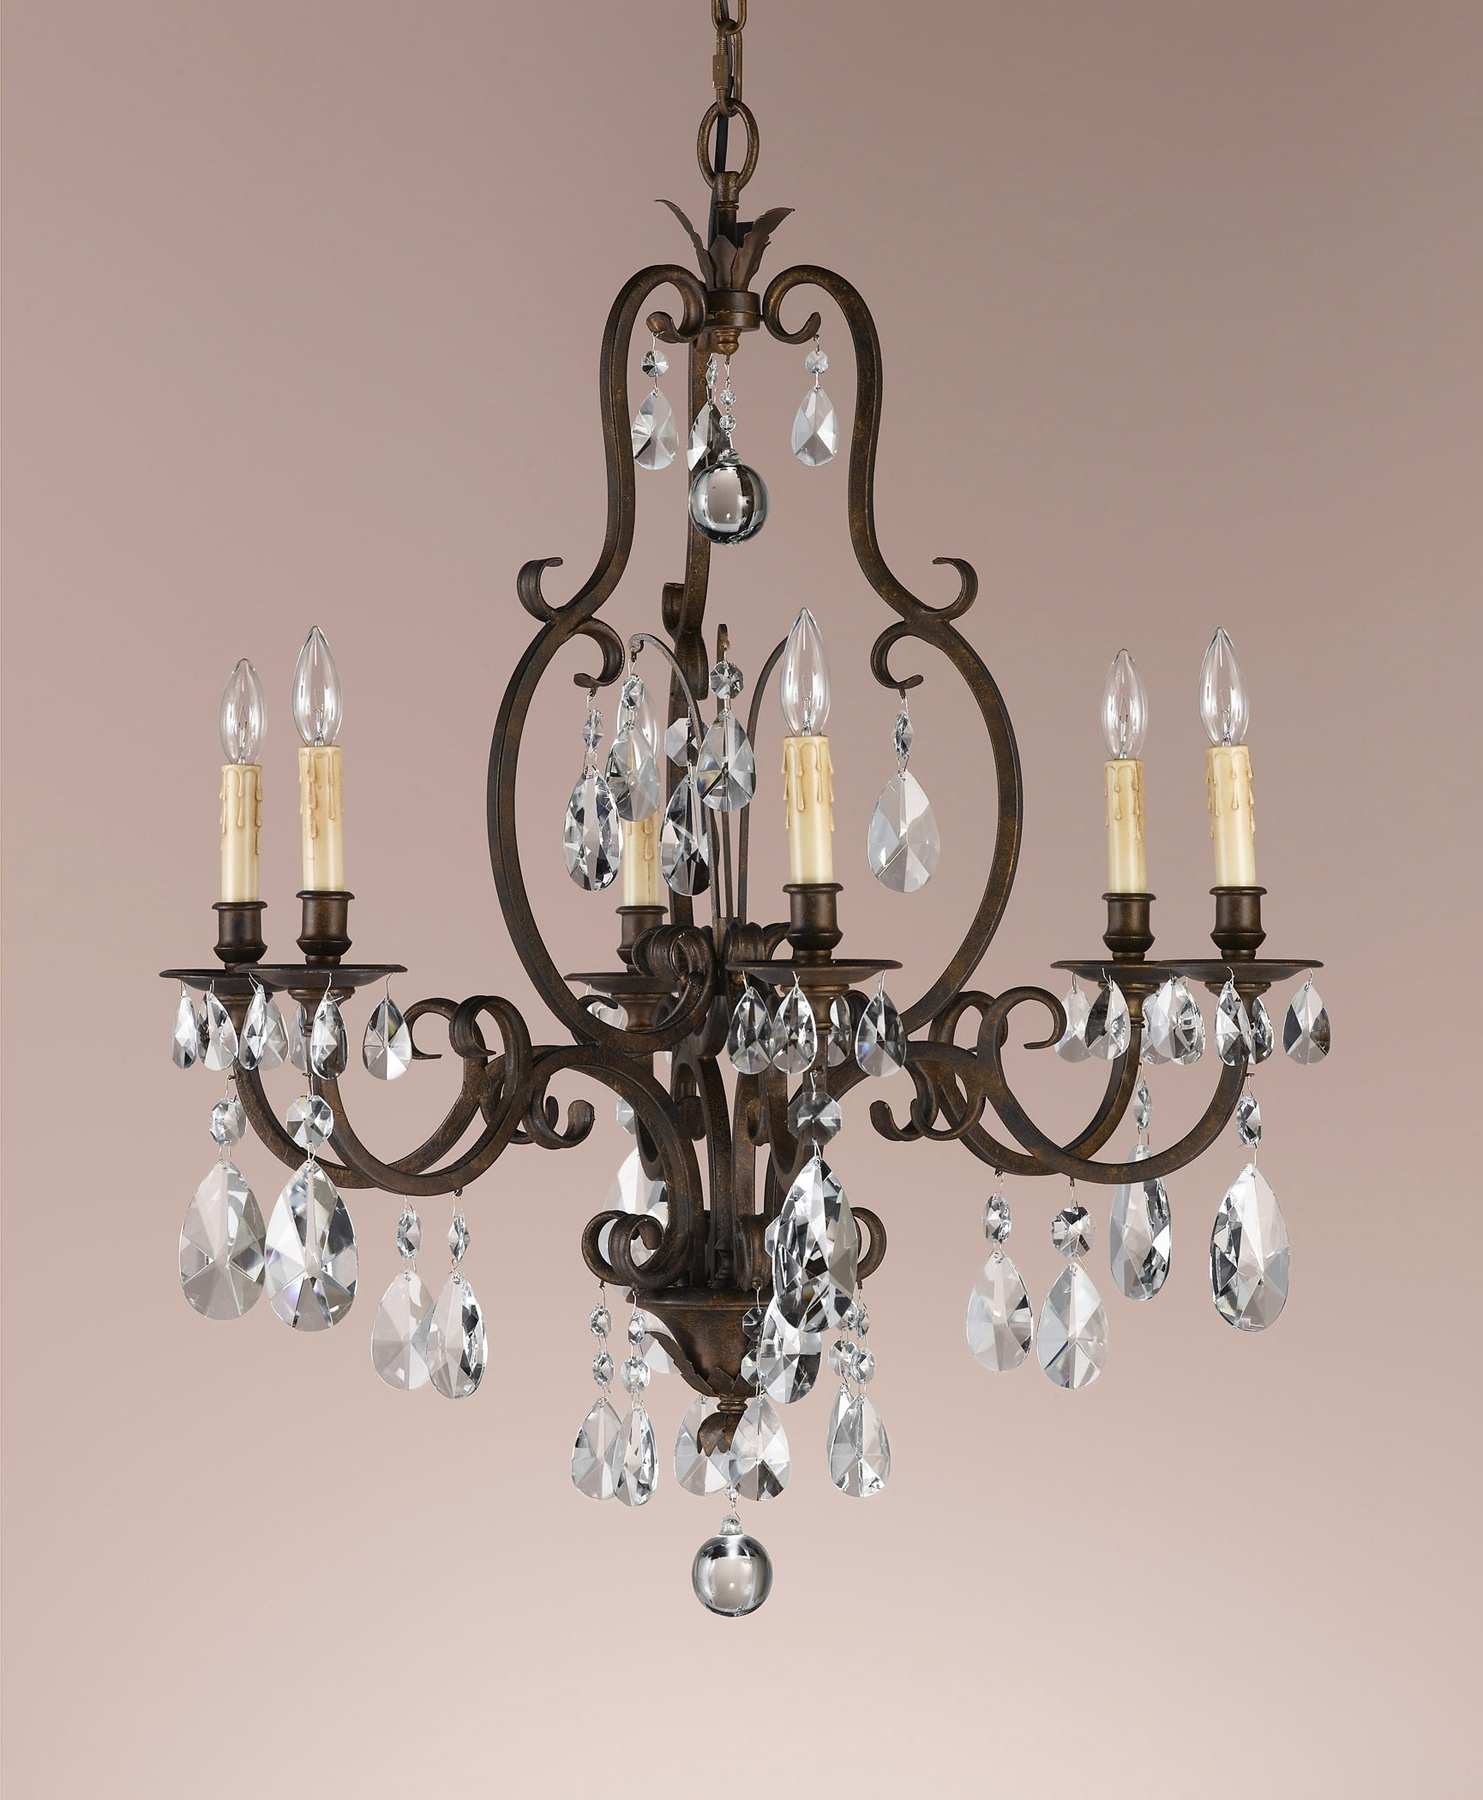 Feiss F2228/6Ats Crystal Salon Maison Six Light Chandelier In Current Feiss Chandeliers (View 9 of 15)